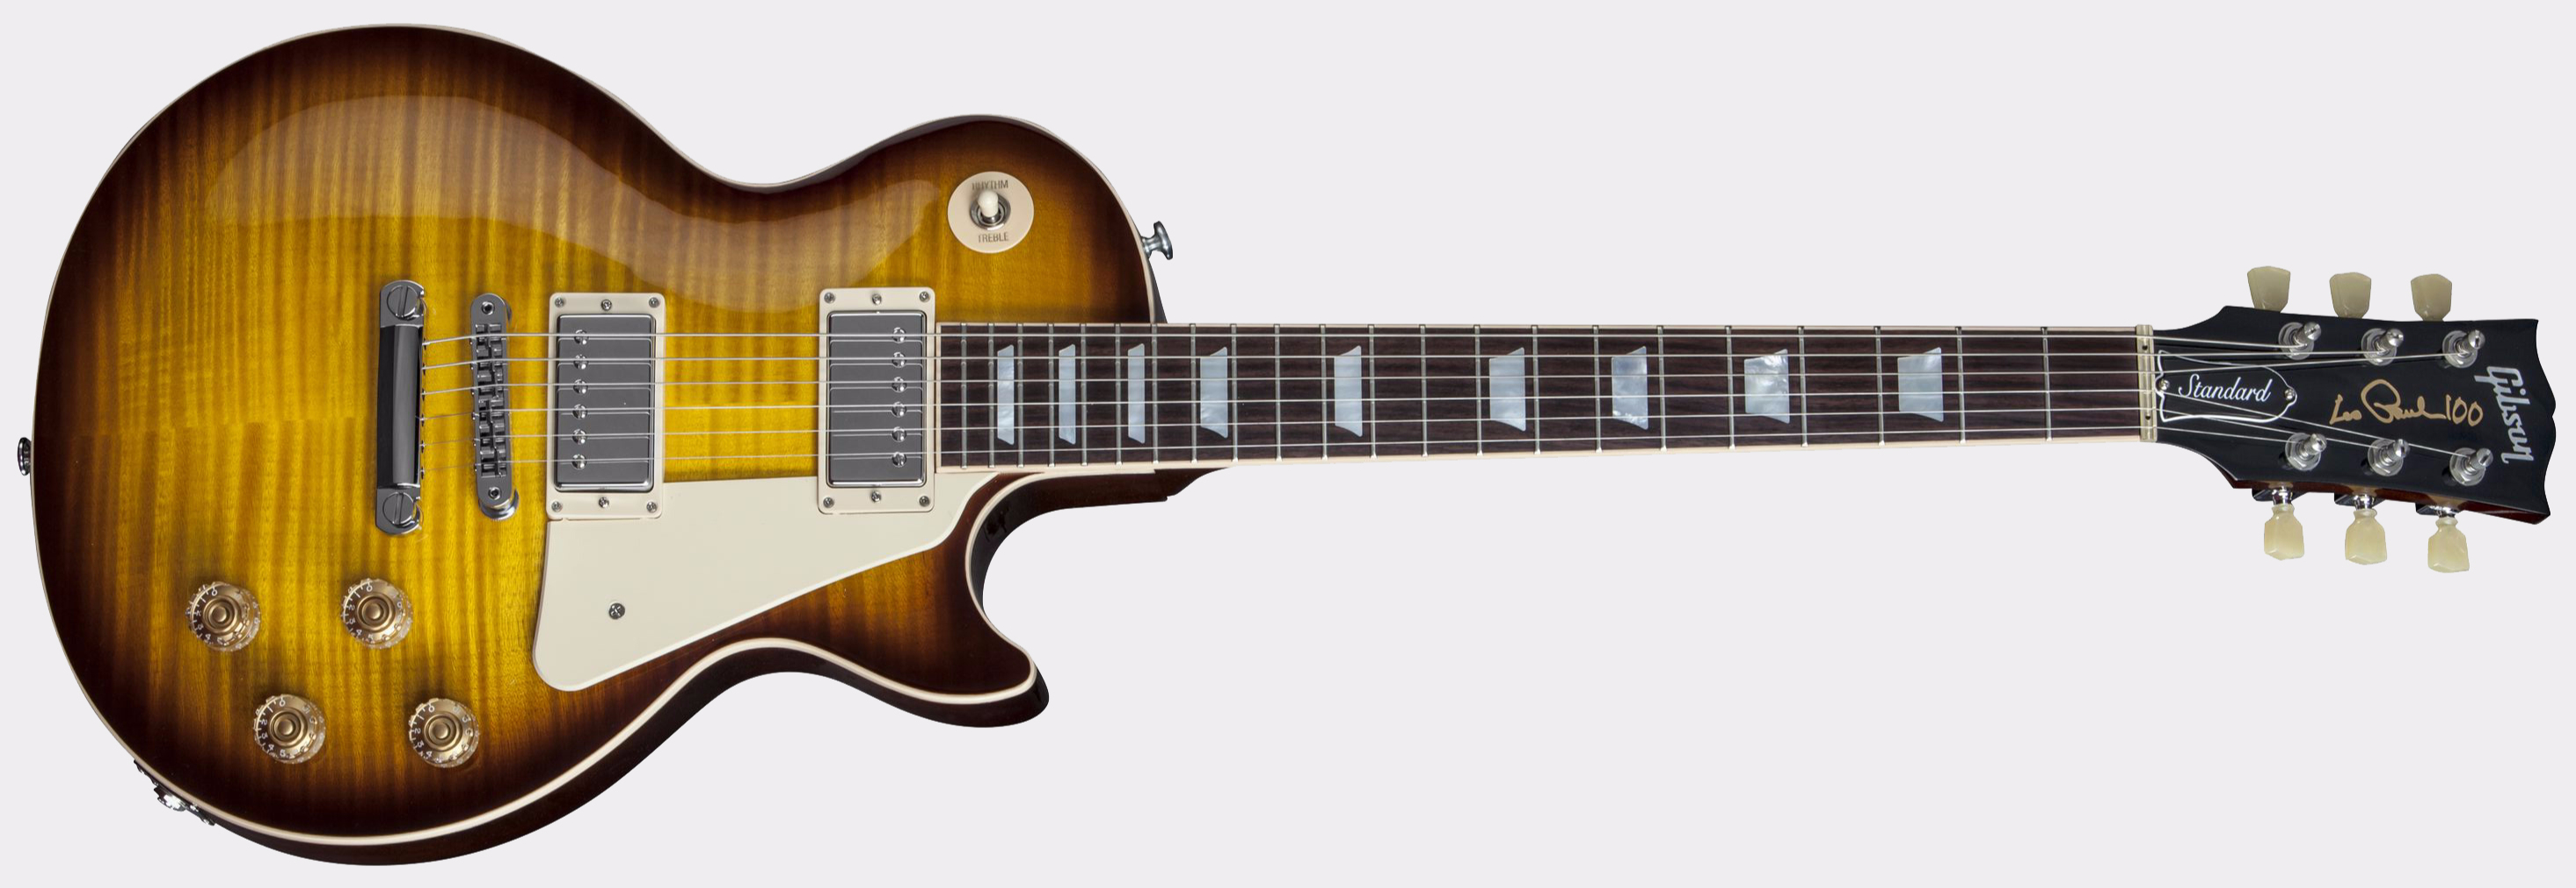 GIBSON Les Paul Standard Tobacco Sunburst Candy